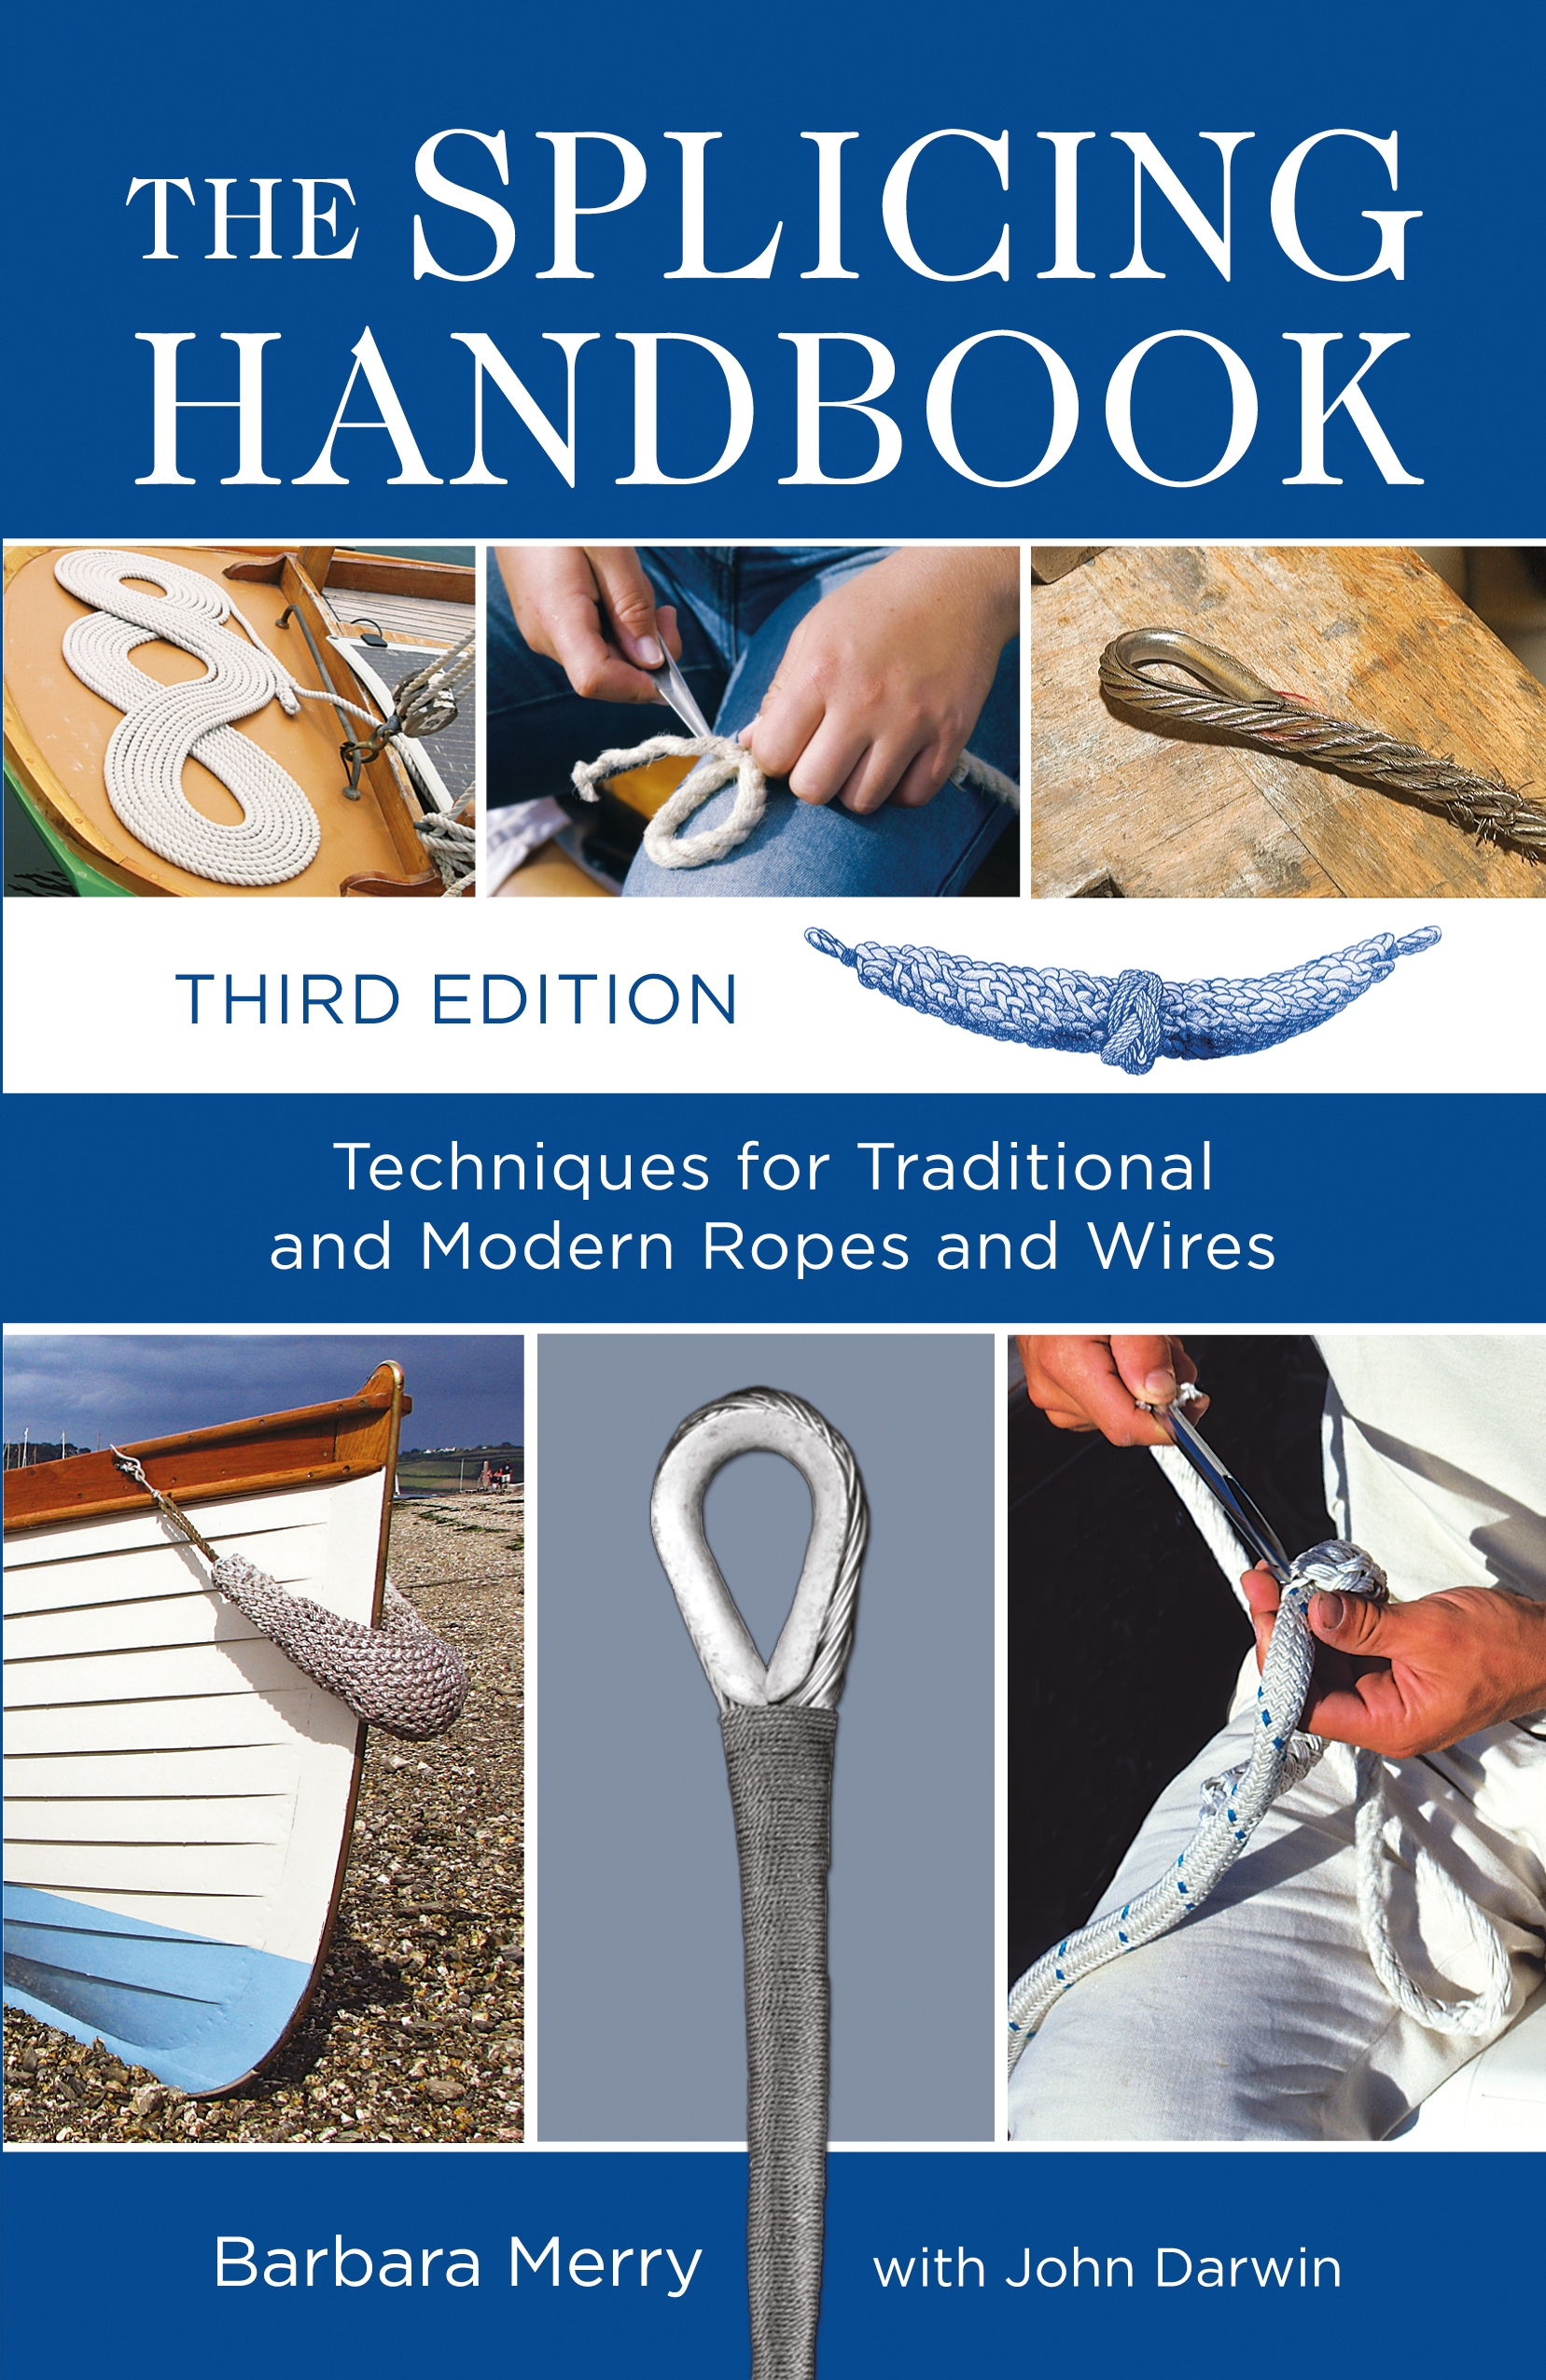 The Splicing Handbook Techniques for Traditional and Modern Ropes and Wires